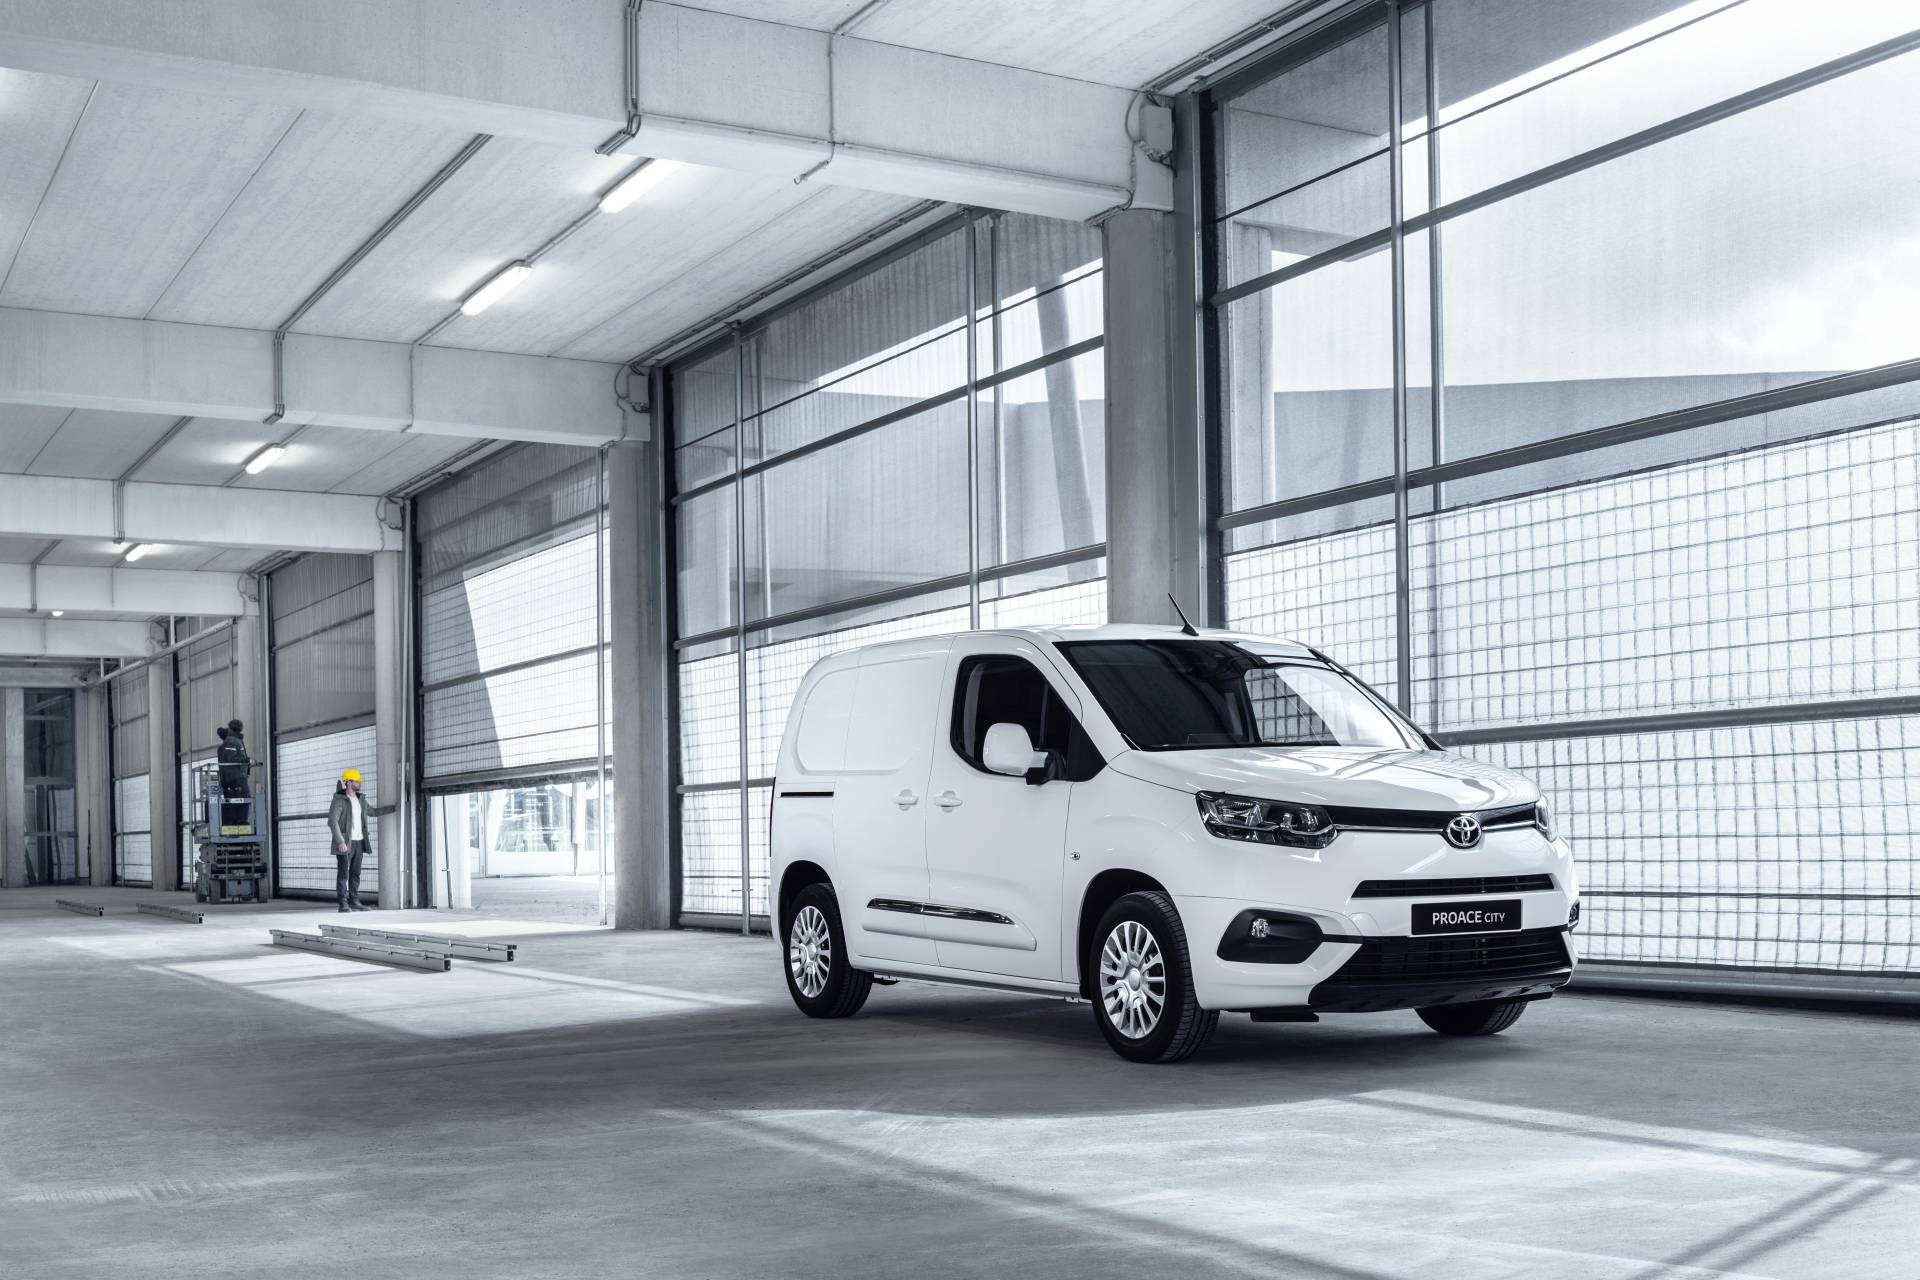 new toyota proace ev scheduled for 2020 - autoevolution